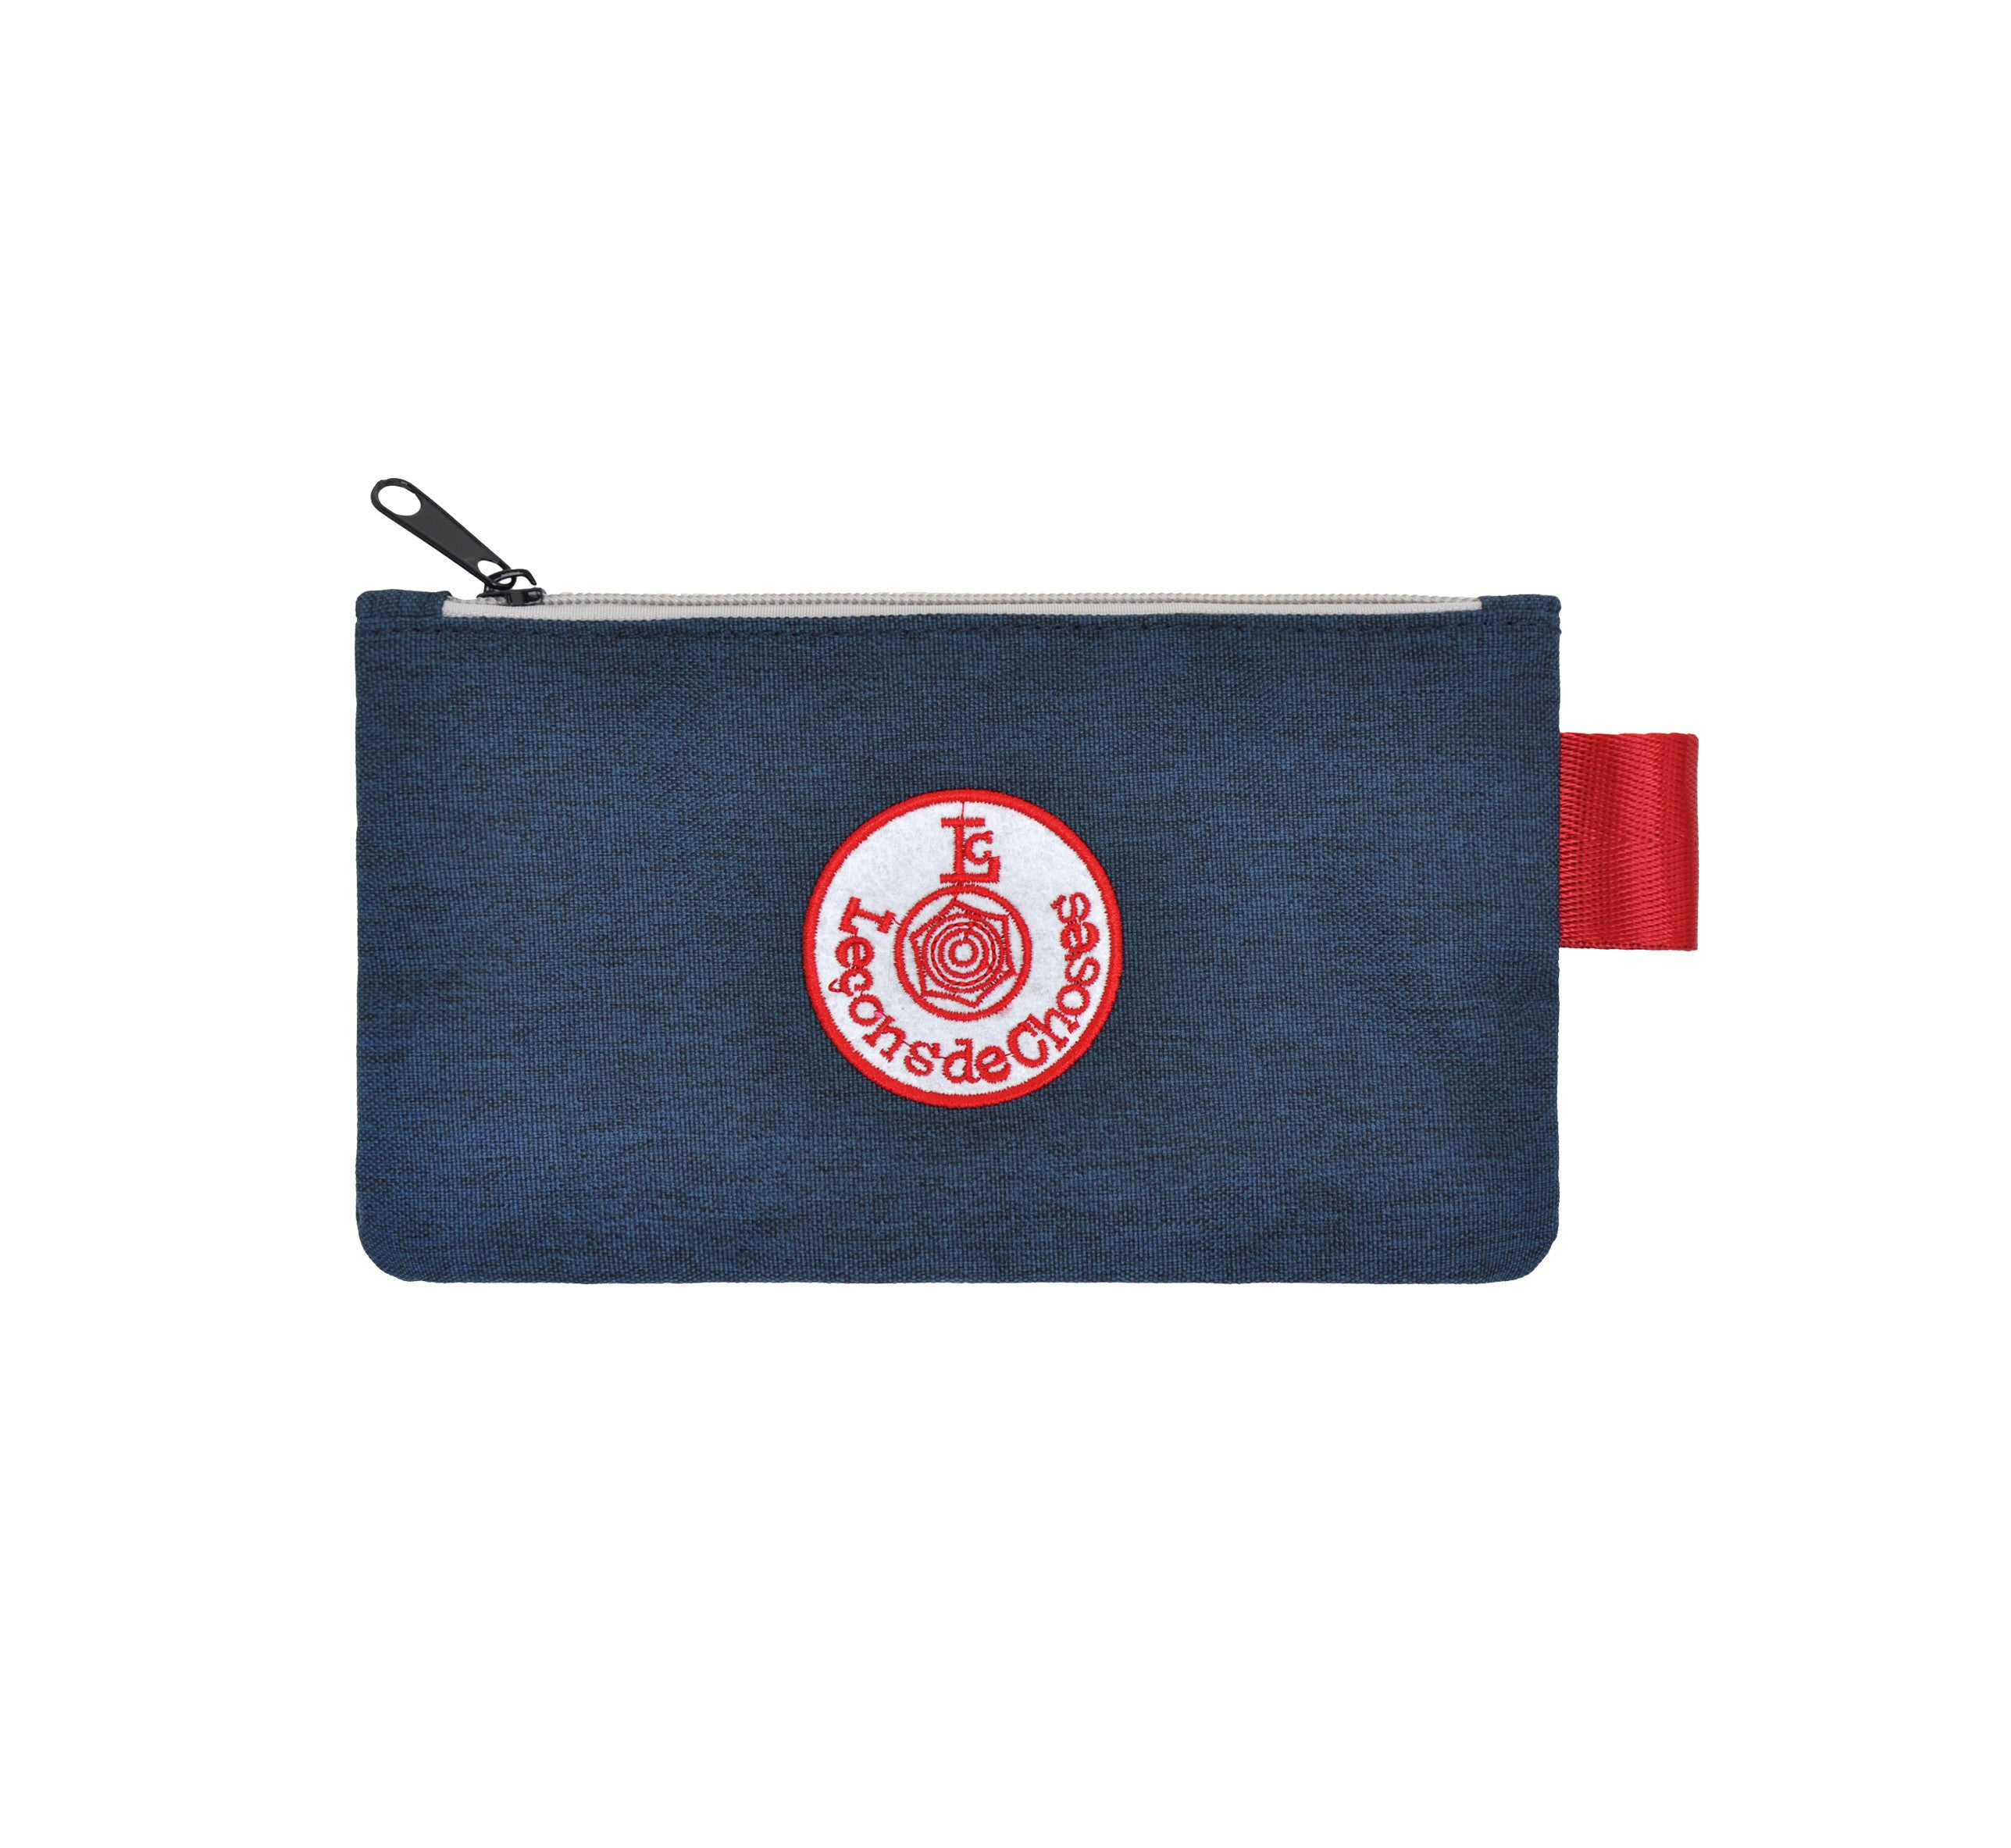 Pencil Case - Blue and Red